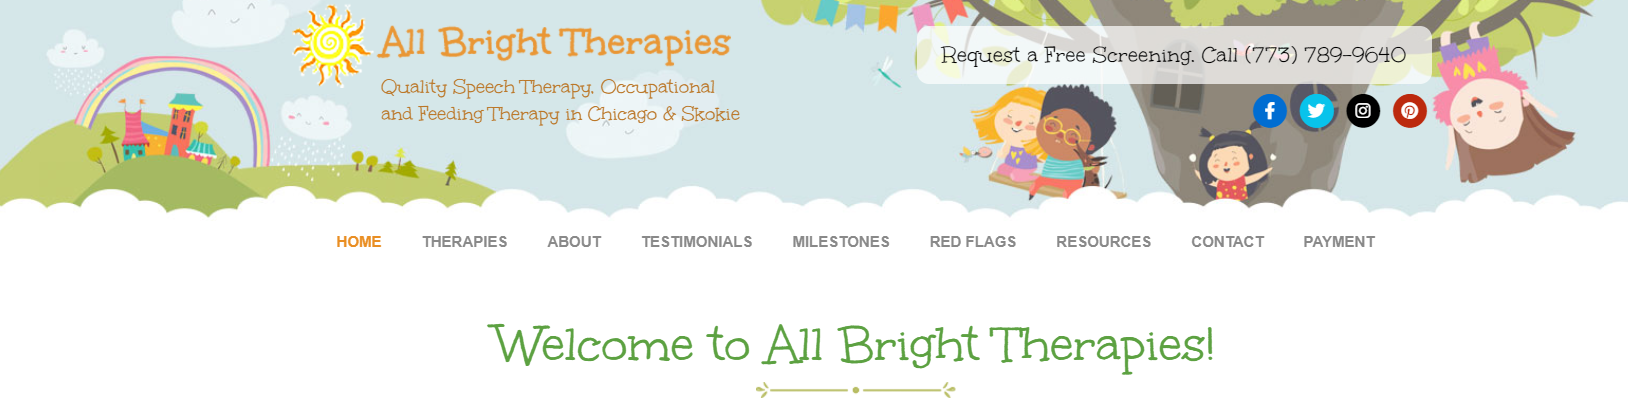 All Bright Therapies